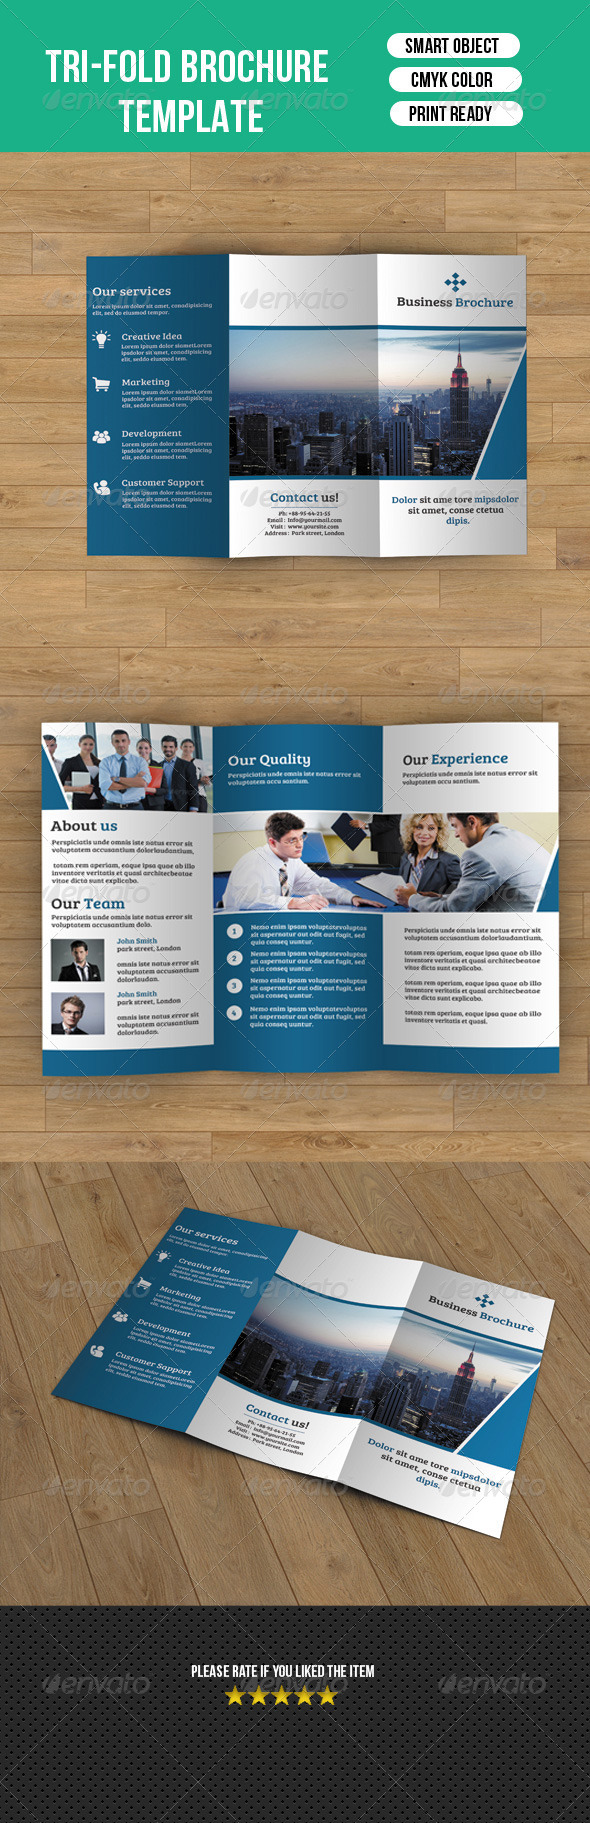 Trifold Business Brochure-V40